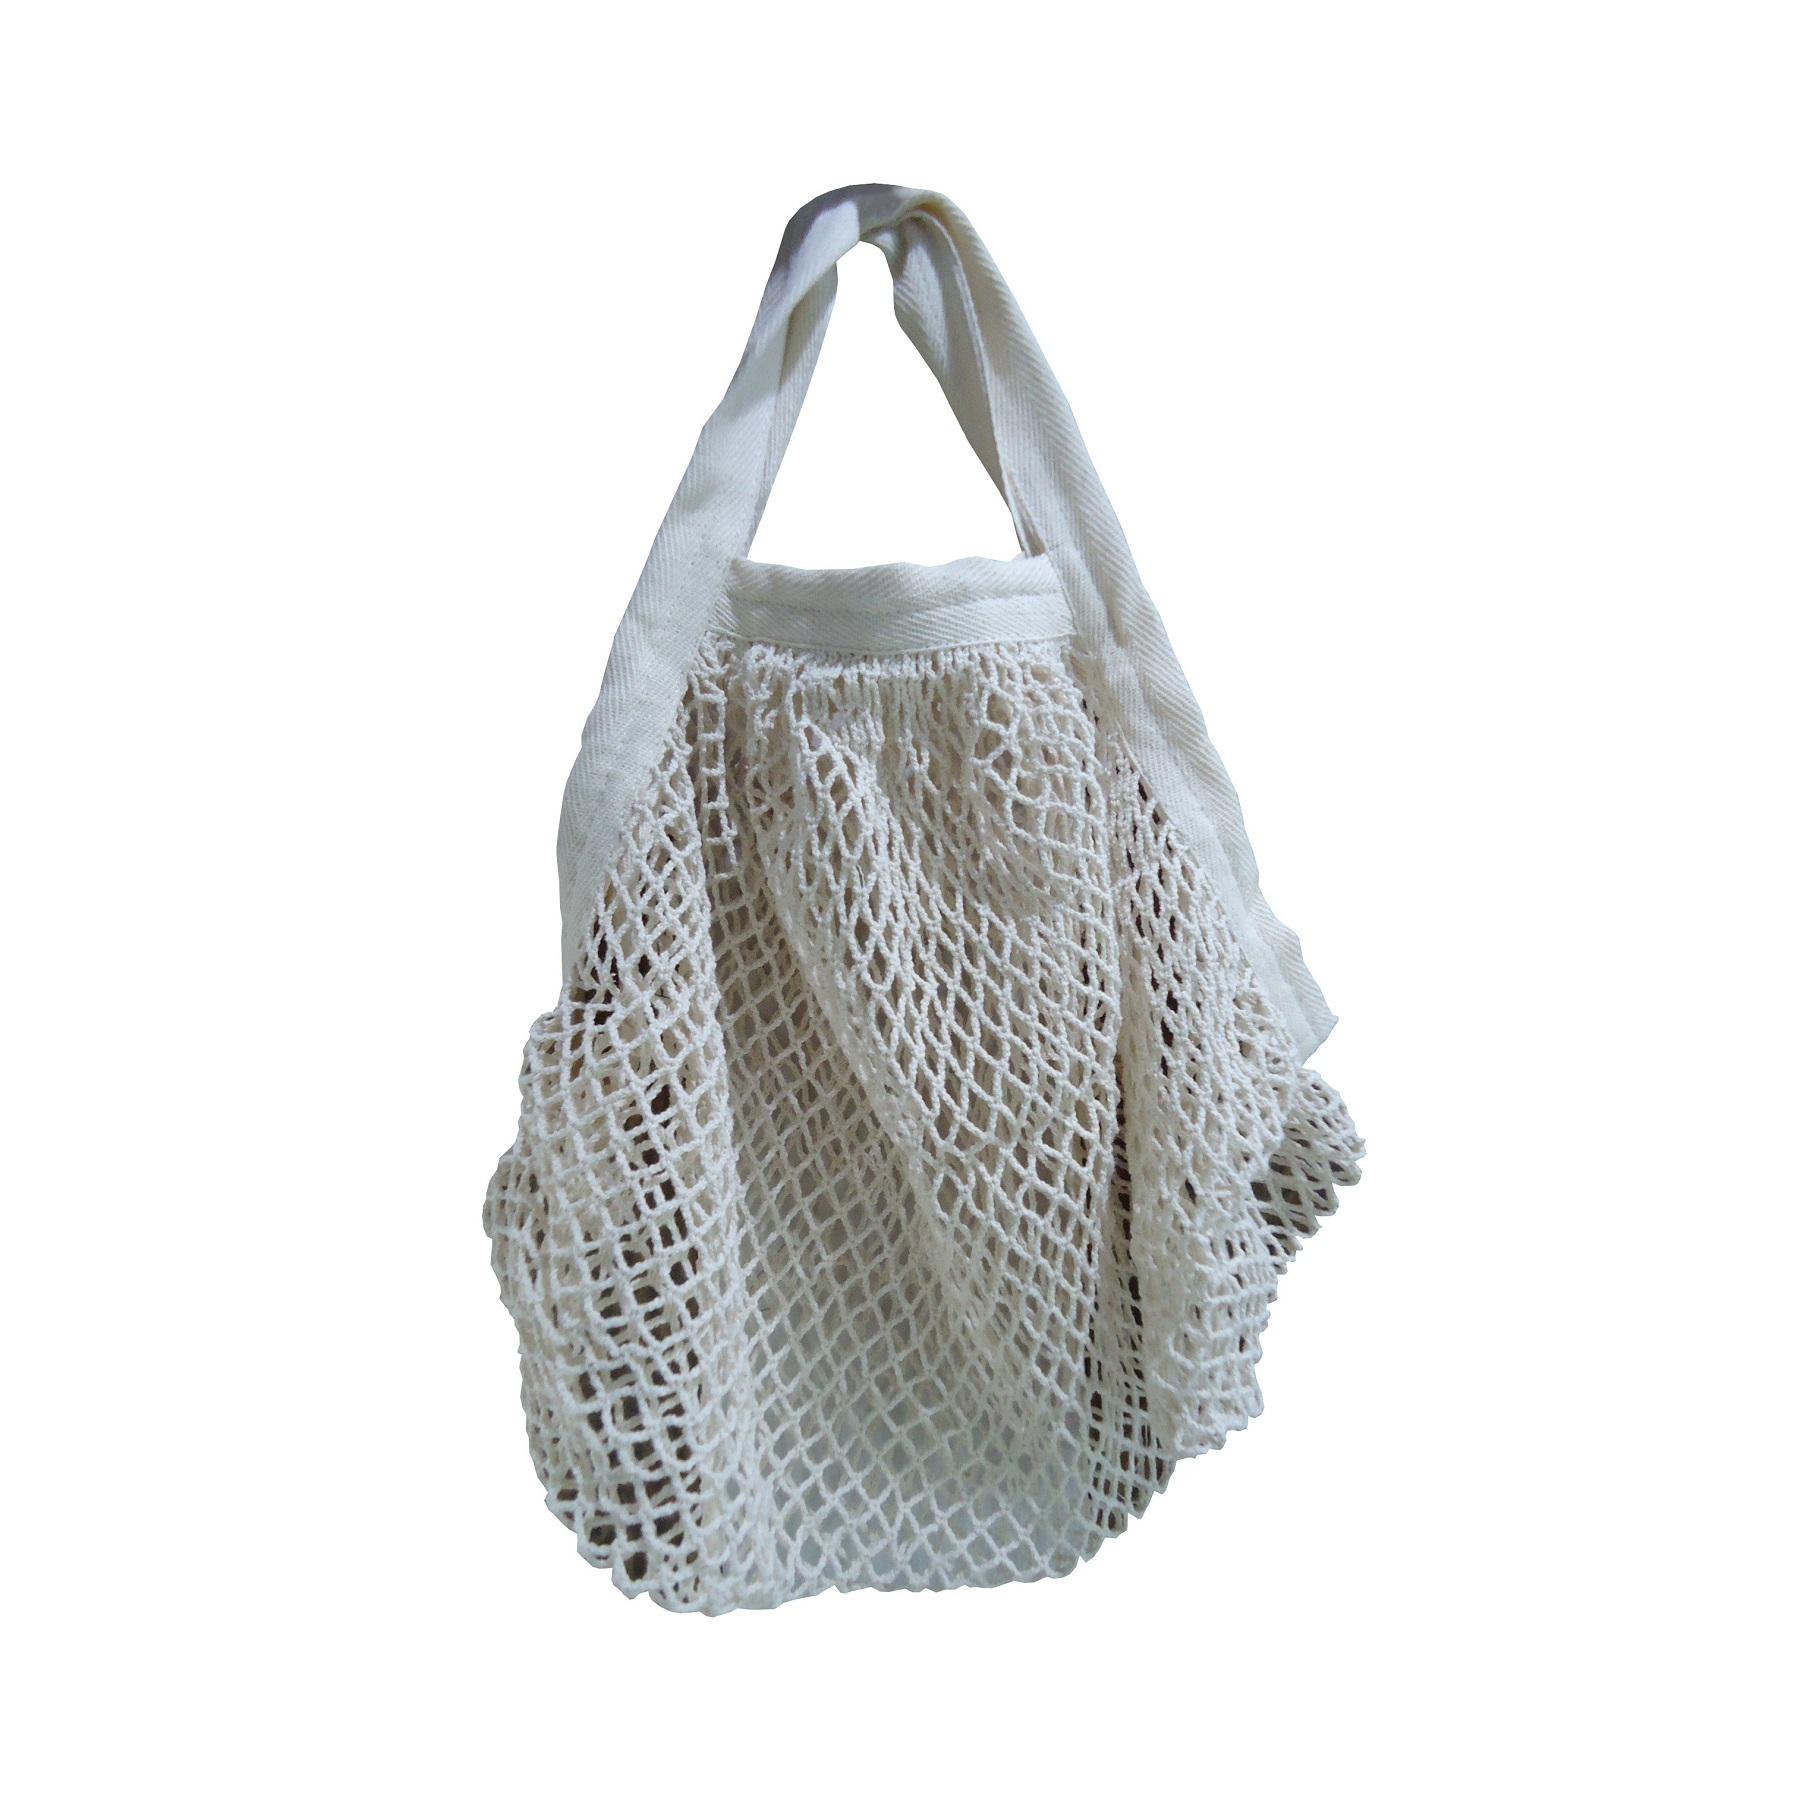 Square Texture Cotton Mesh Grocery Bag With Web Handle